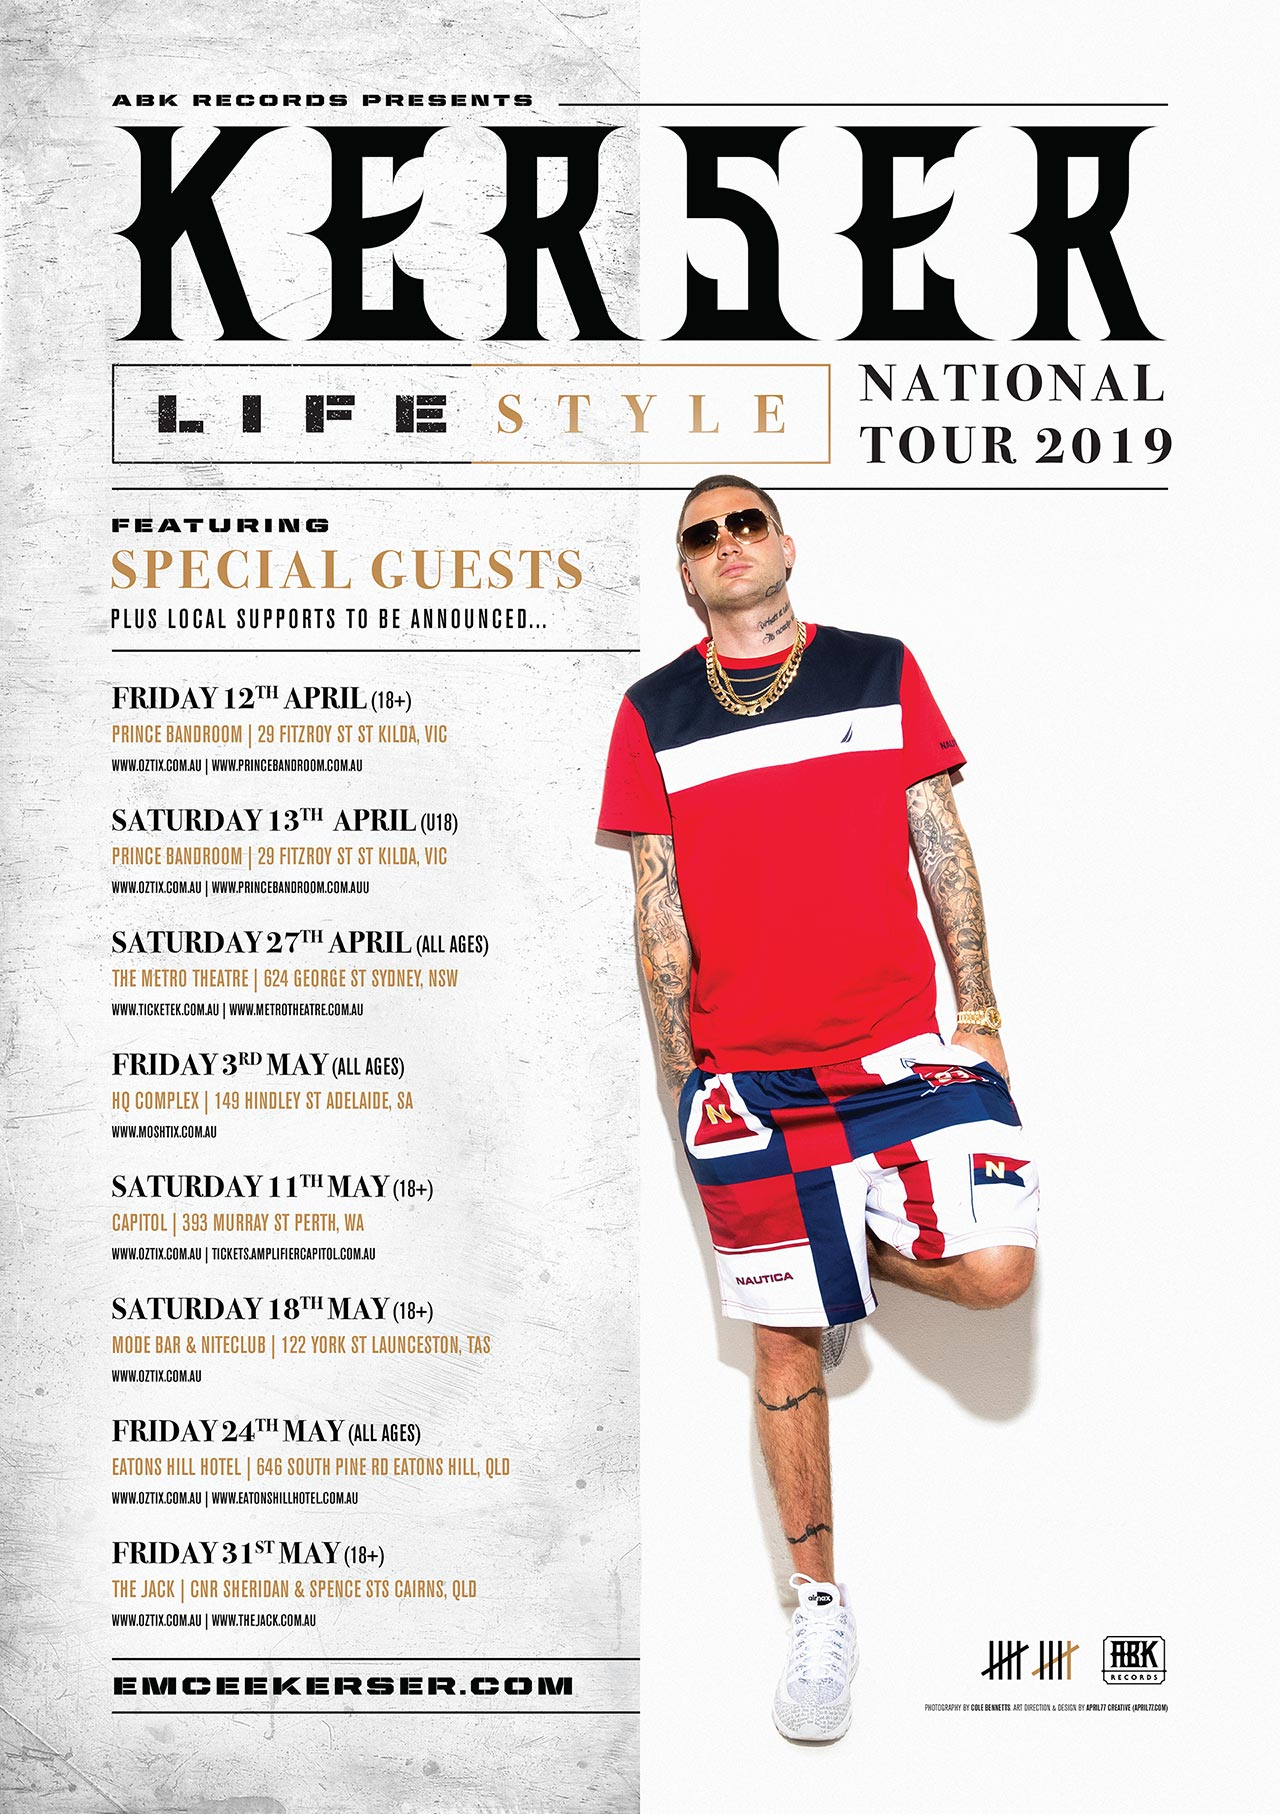 KERS030-LifeStyle-National-Tour-2019-1280px